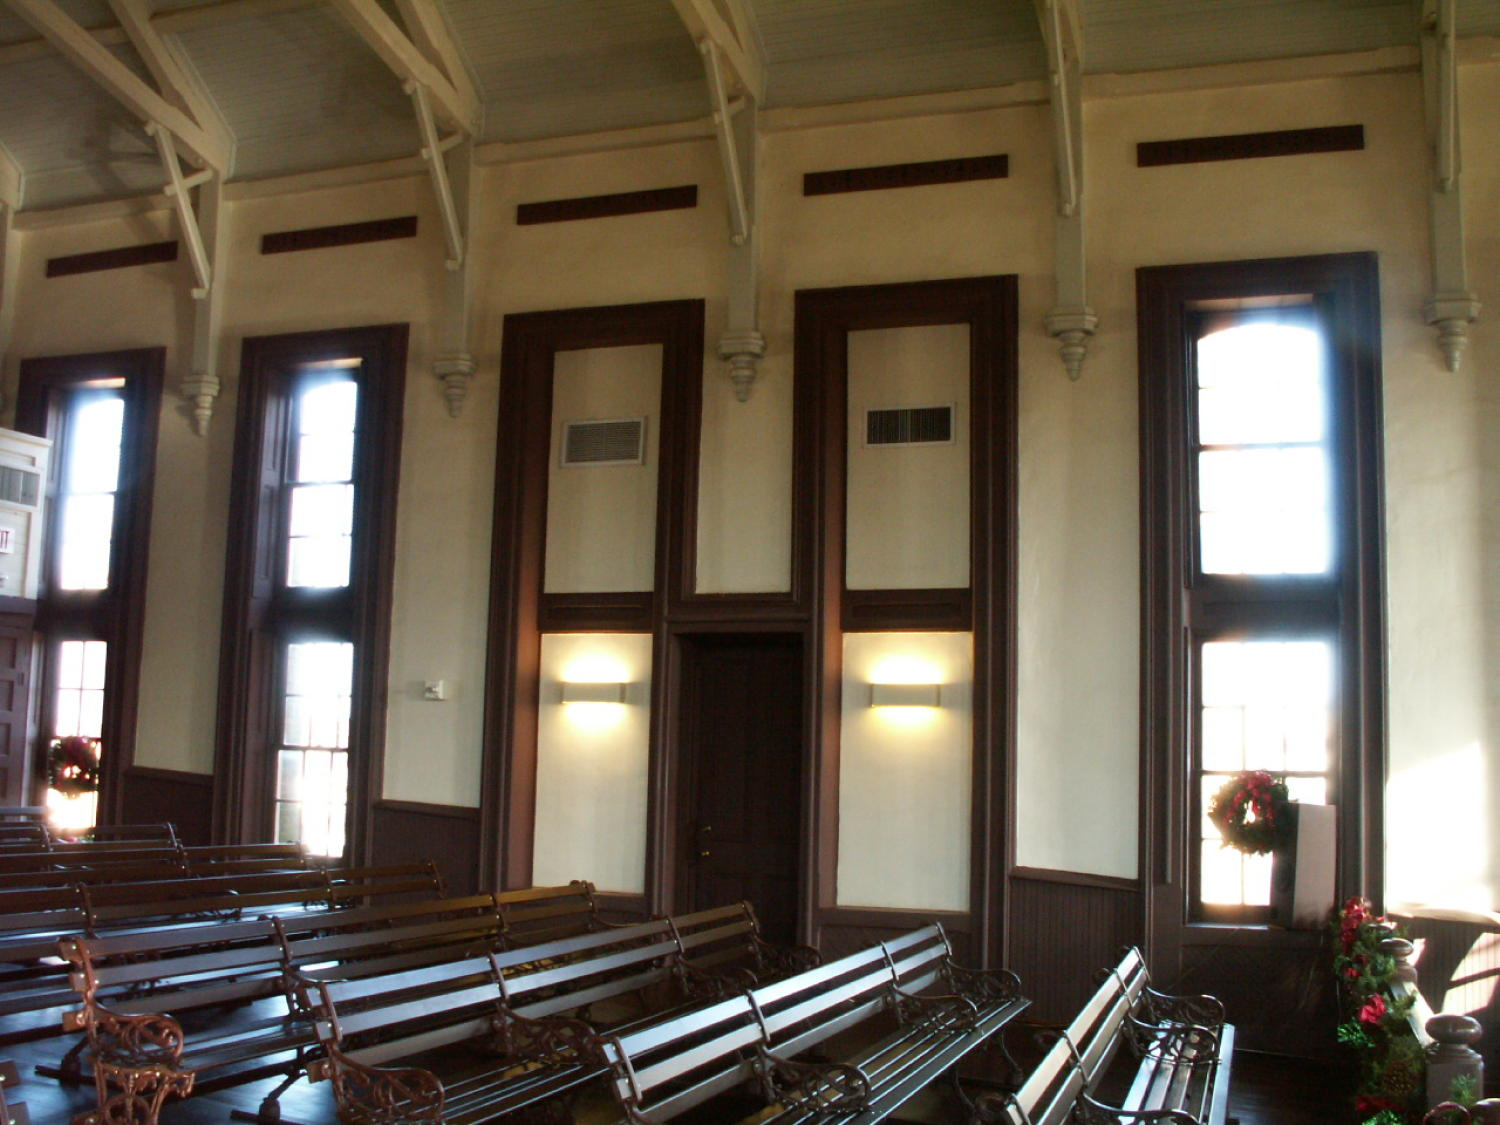 [Rows of Benches], Photograph of several rows of wooden benches in a courtroom in Center, Texas. There are wreaths placed in two of the three windows, and a garland is draped on the railing to the right.,